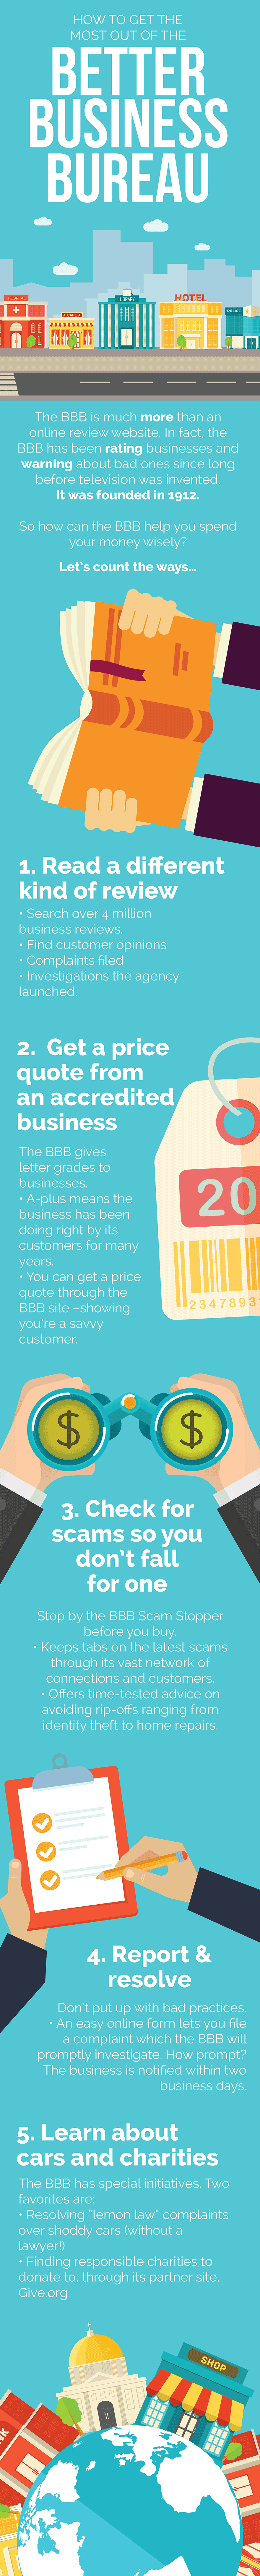 Better Business Bureau infographic